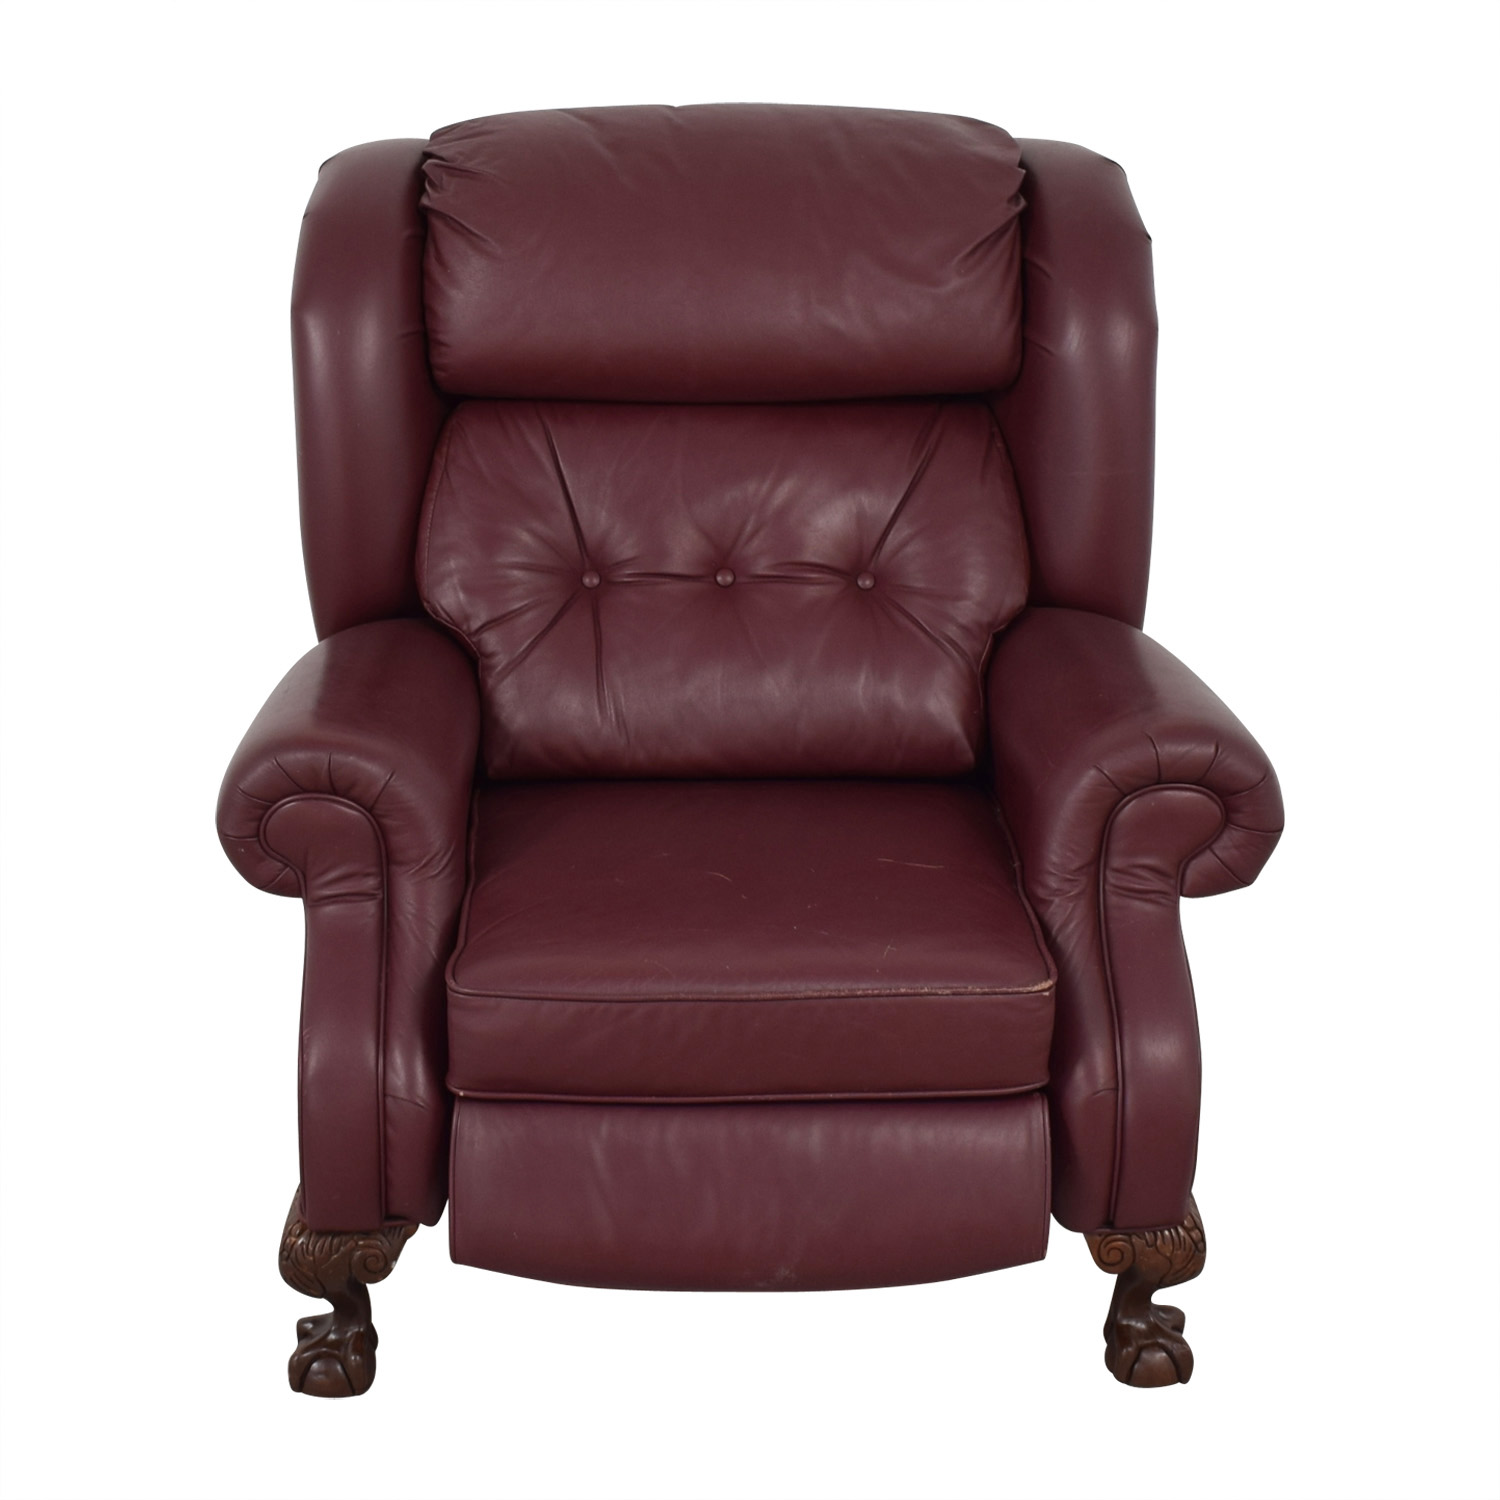 shop PeopLoungers PeopLoungers Burgundy Recliner online